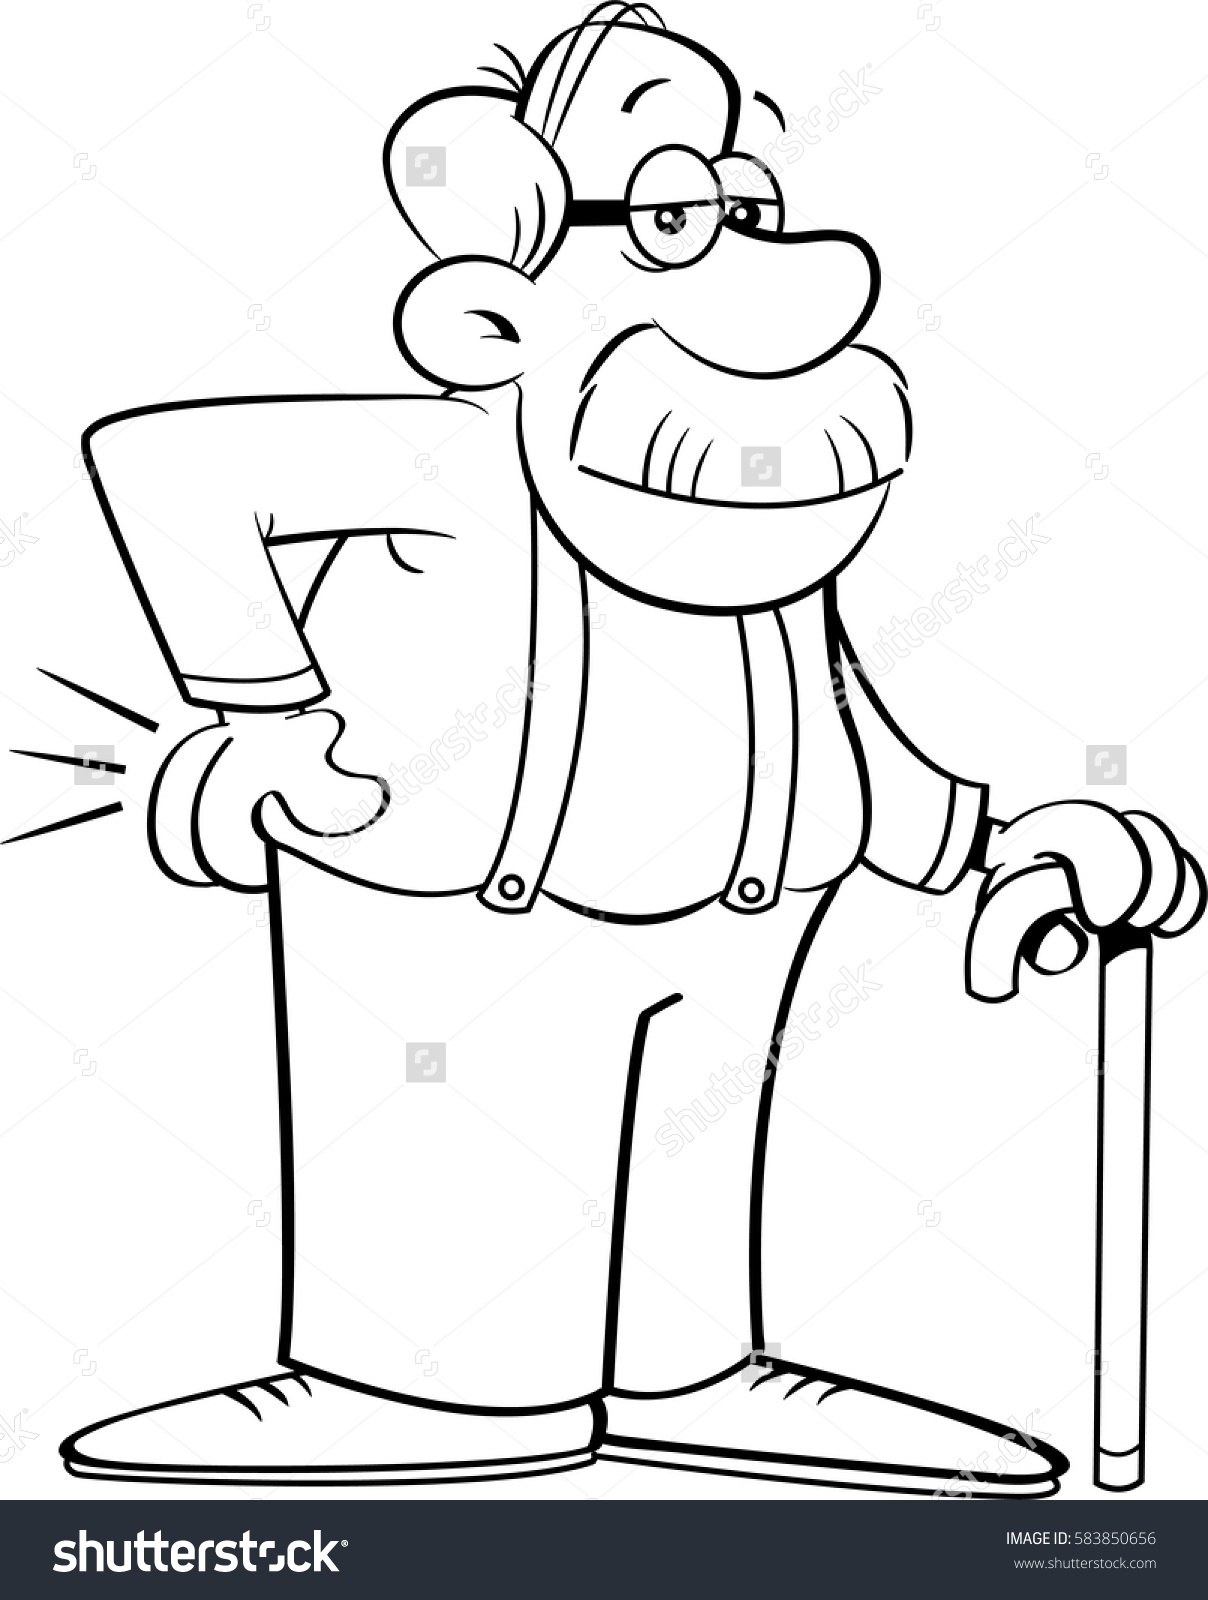 Black White Illustration Old Man Leaning Stock Vector 583850656.